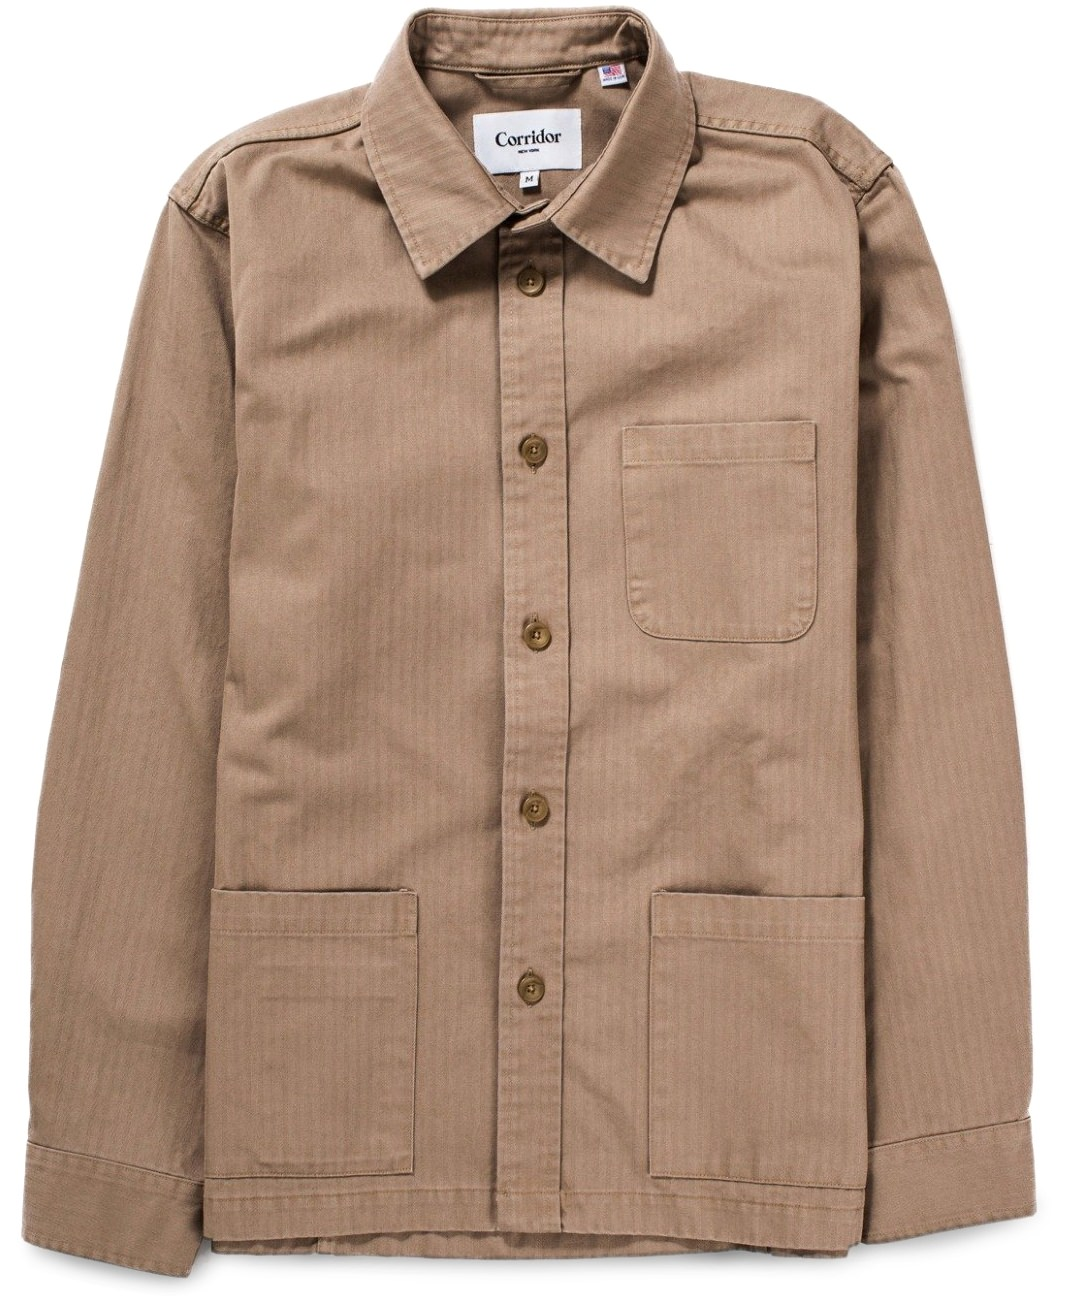 Corridor transitional herringbone overshirt jacket